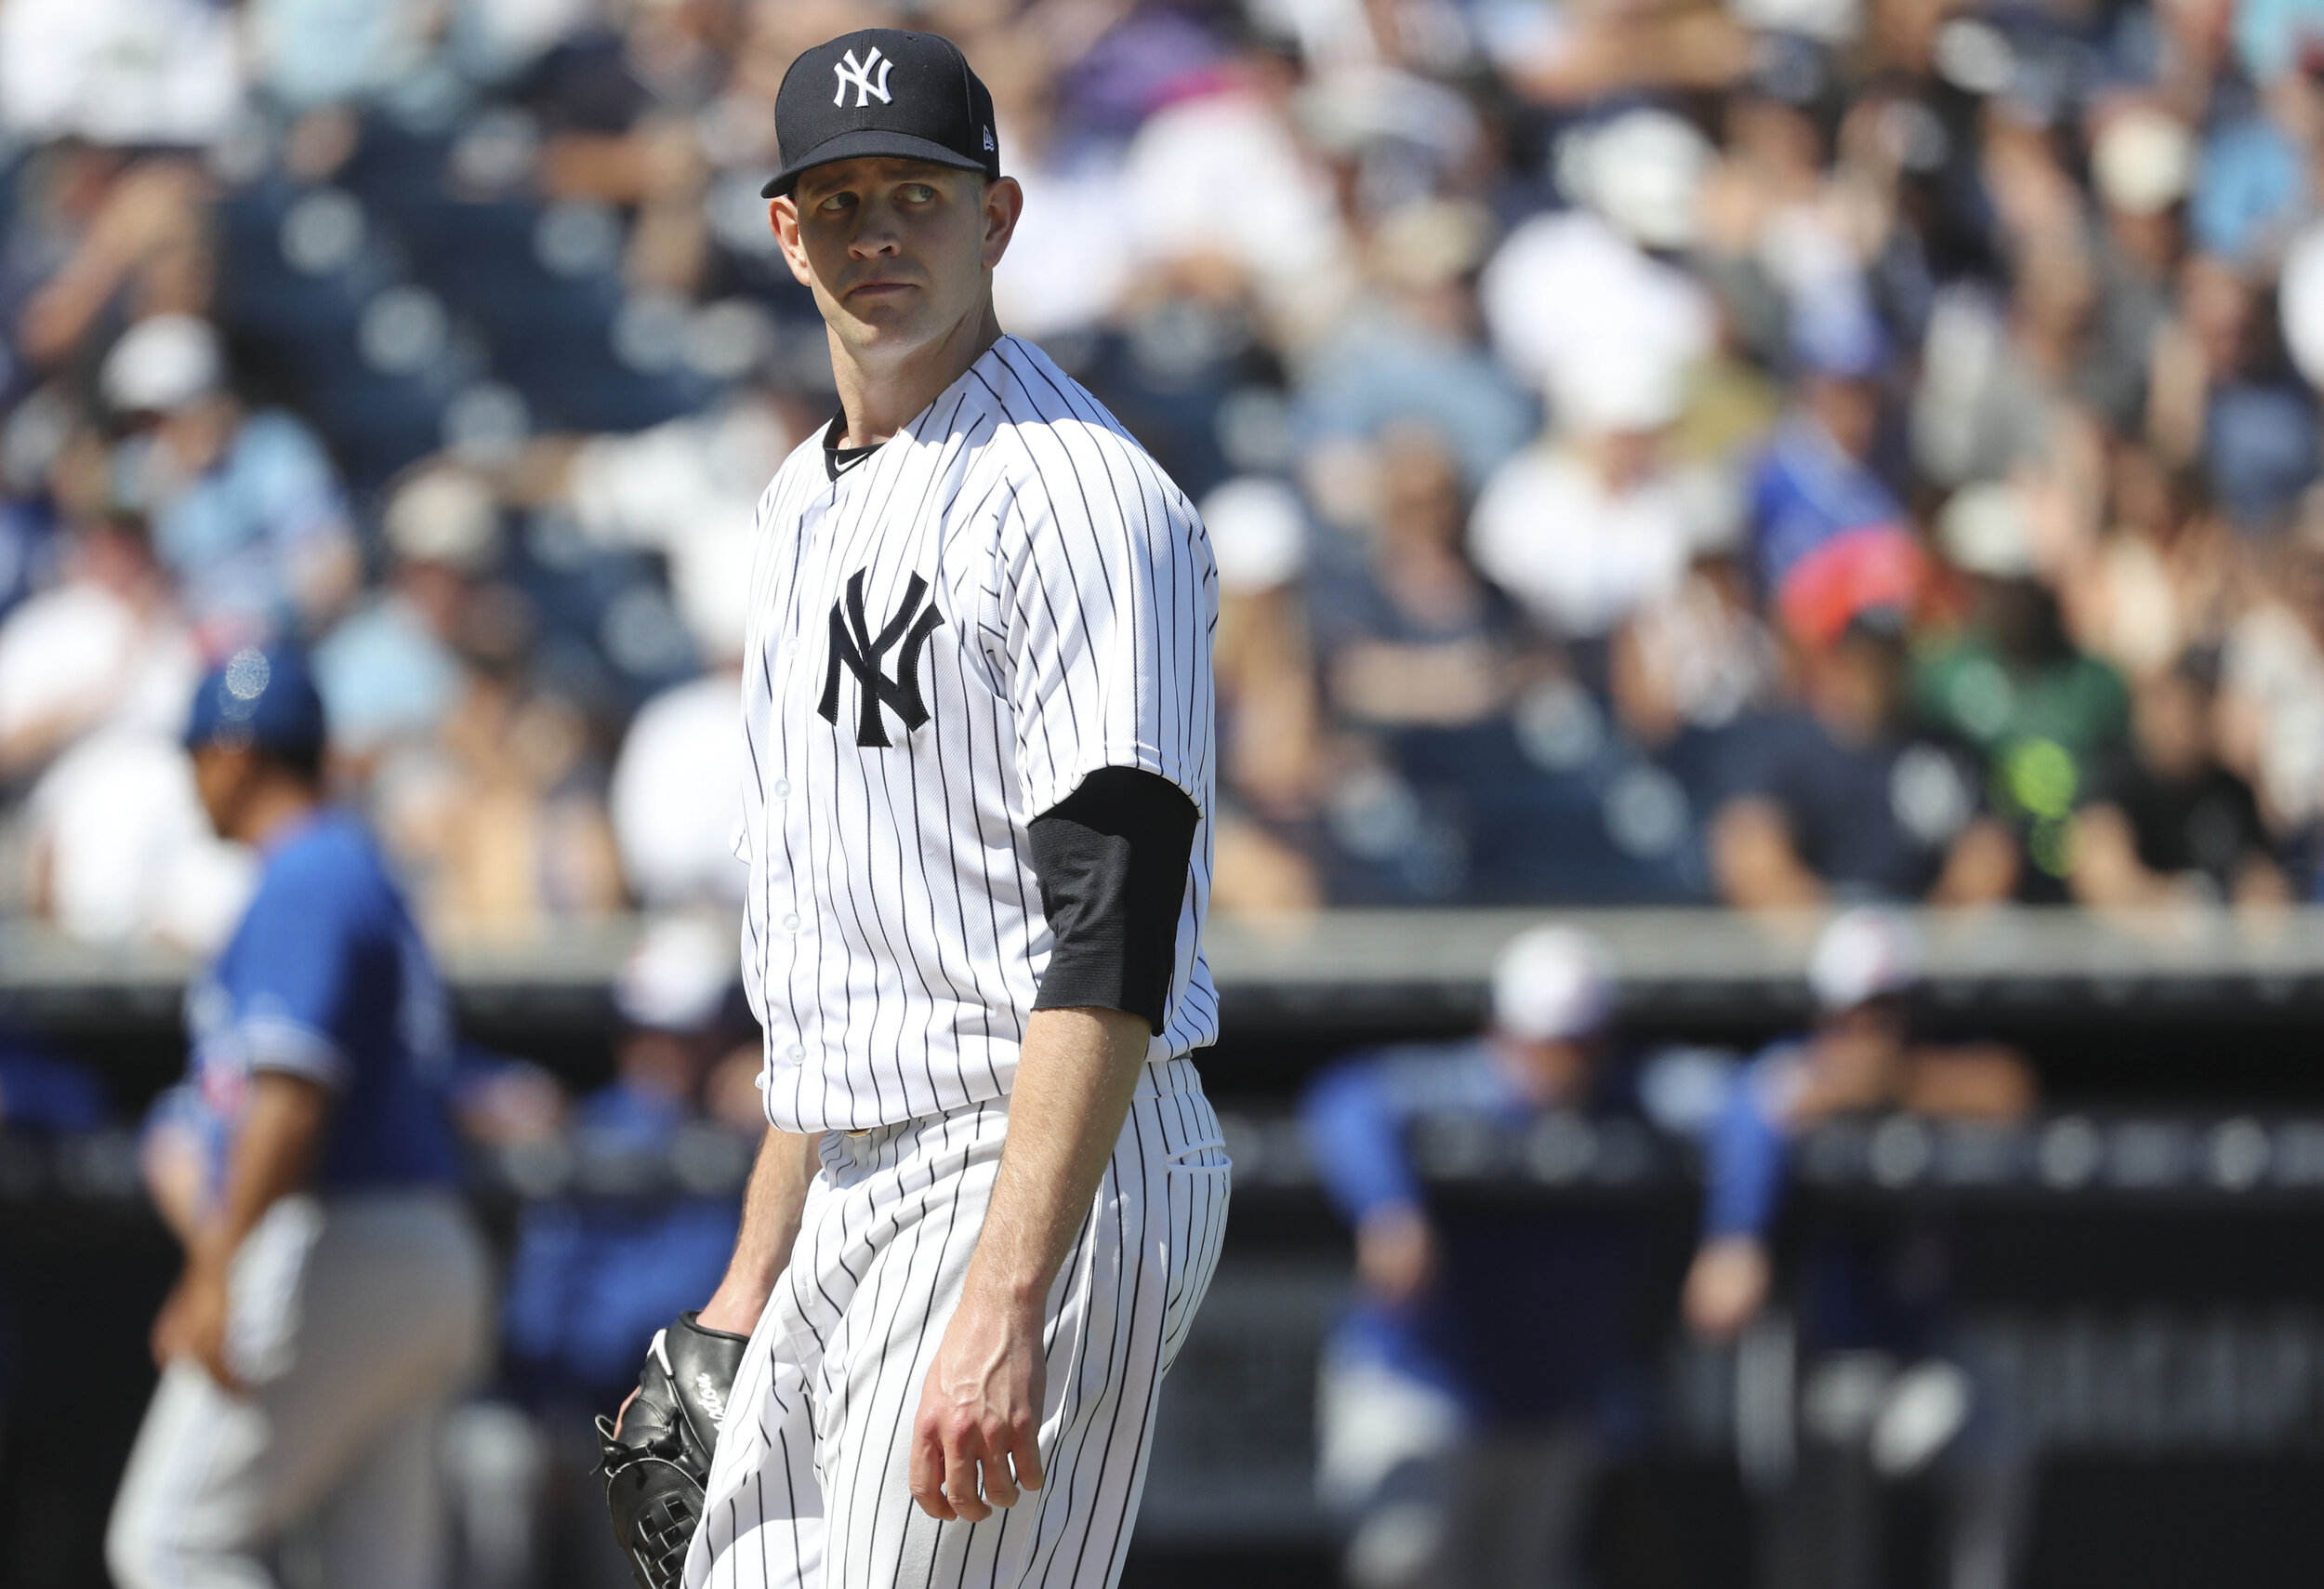 North Delta Blue Jays alum James Paxton (Ladner, BC) will likely be the Game 1 starter for the New York Yankees in the American League Championship Series. Photo: USA Today Sports